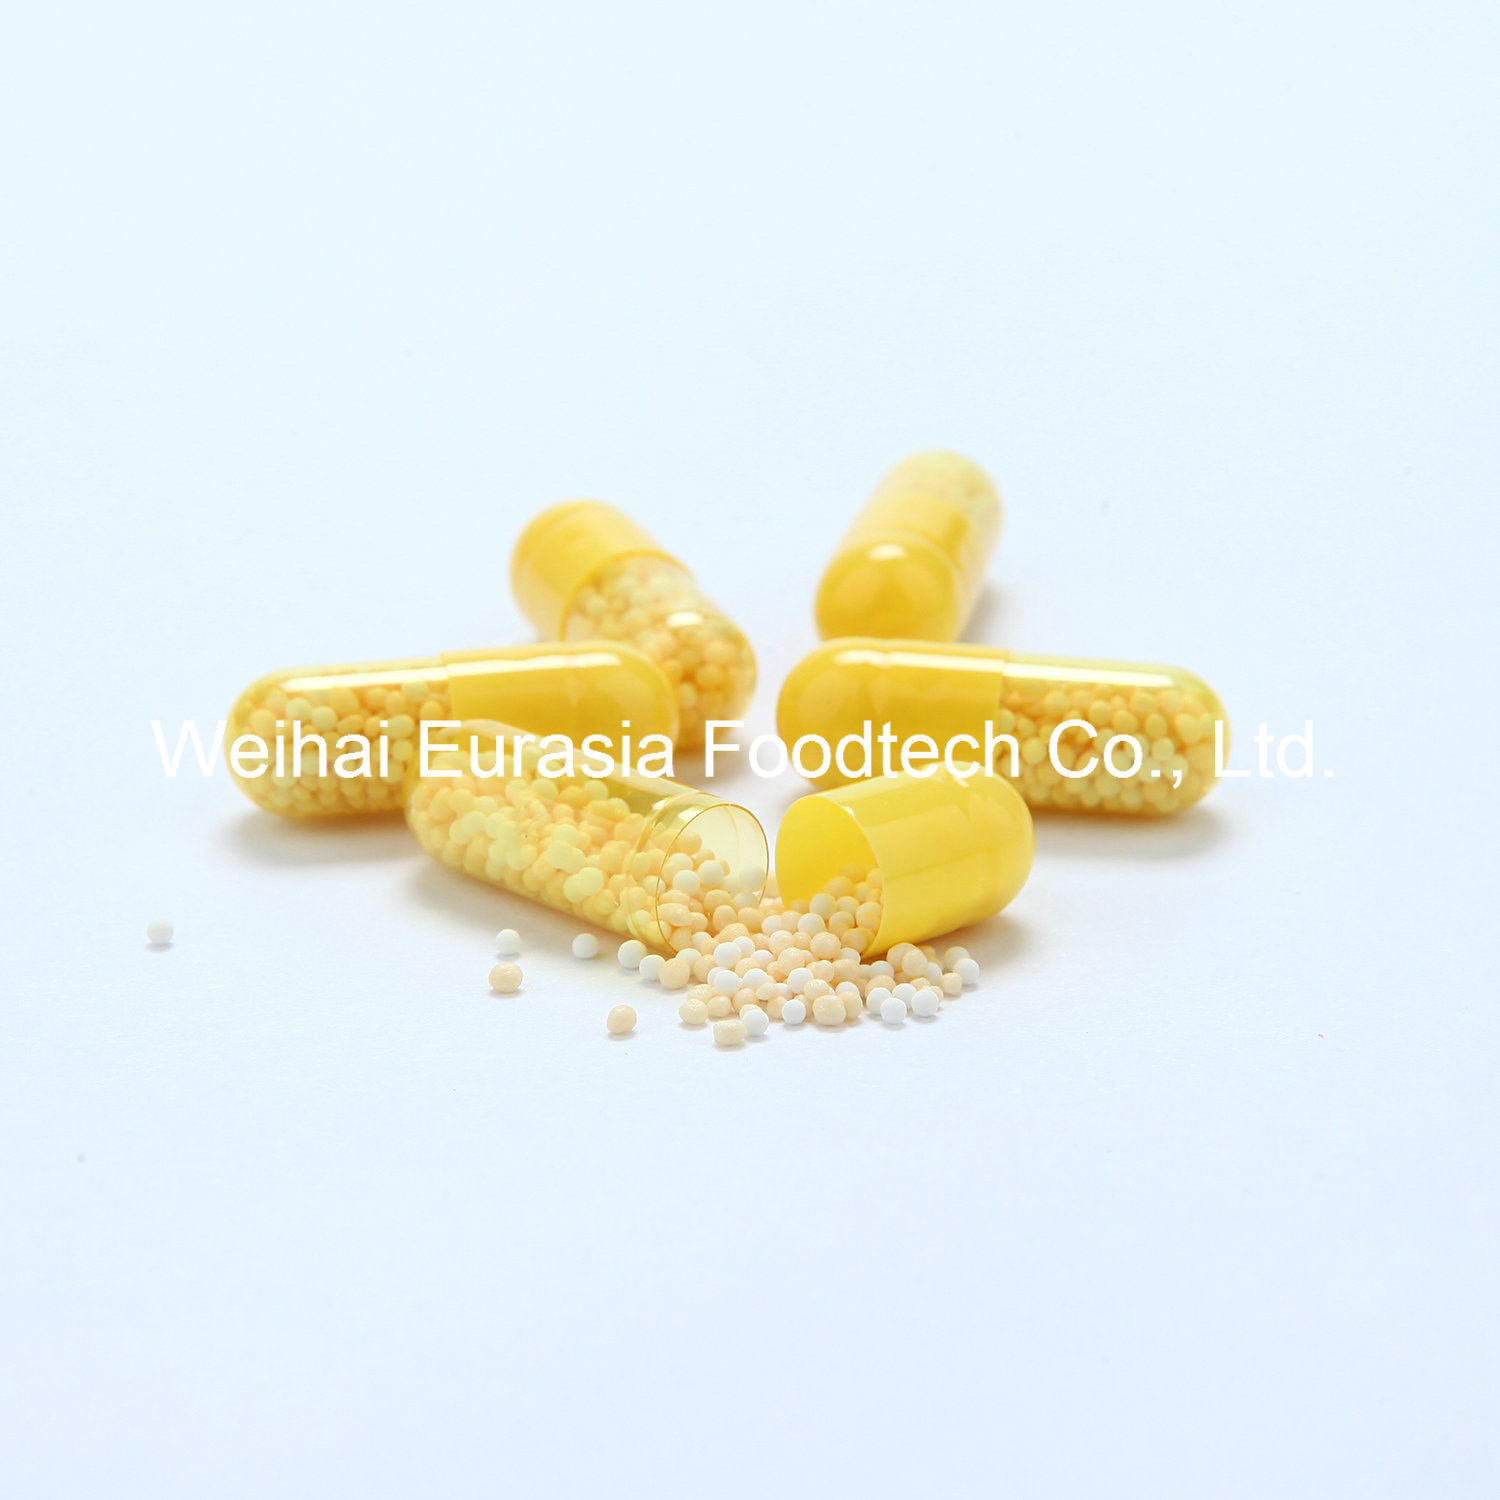 Vitamin C and Zinc Sustained-Release Capsules